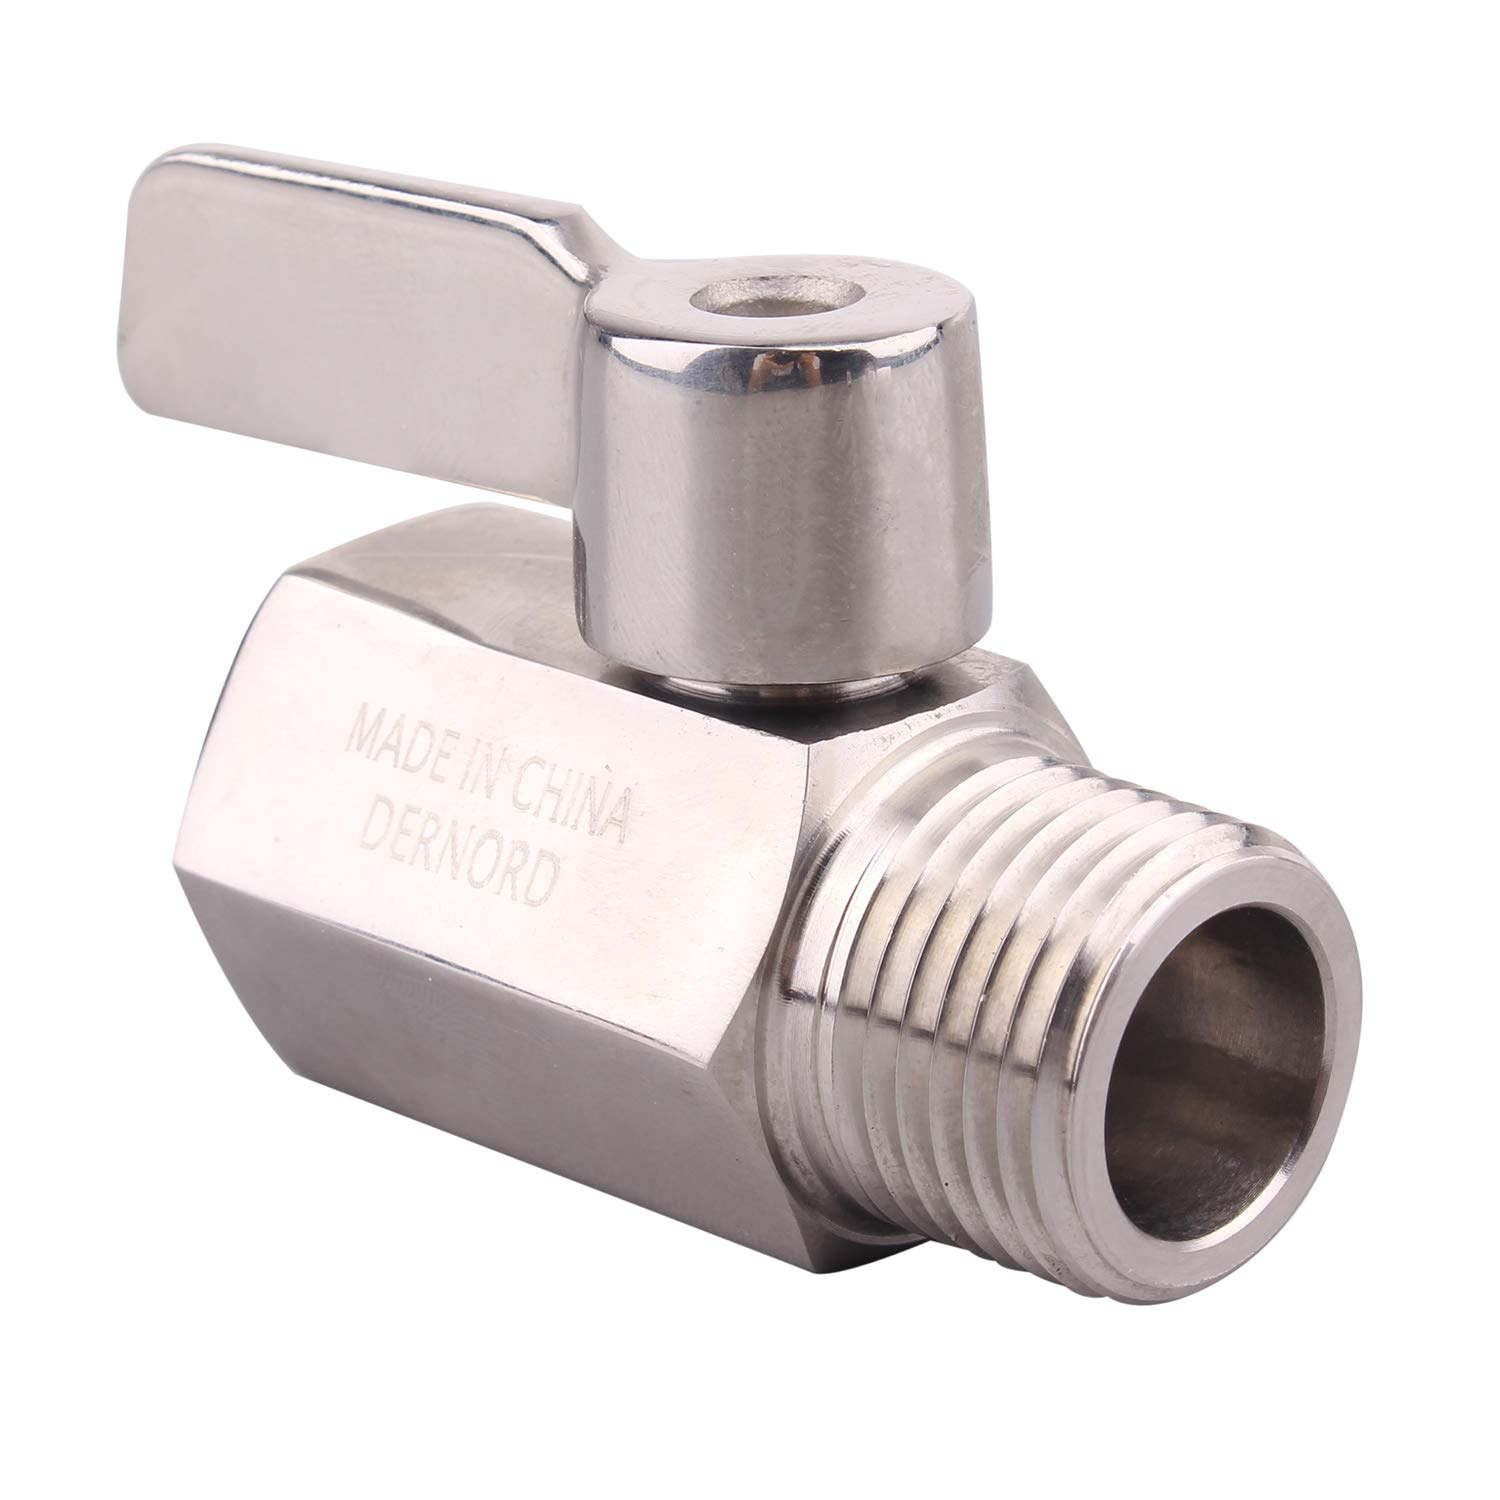 Stainless Steel 304 Mini Ball Valve Female X Male Double4U 1//2 inch NPT Ball Valve